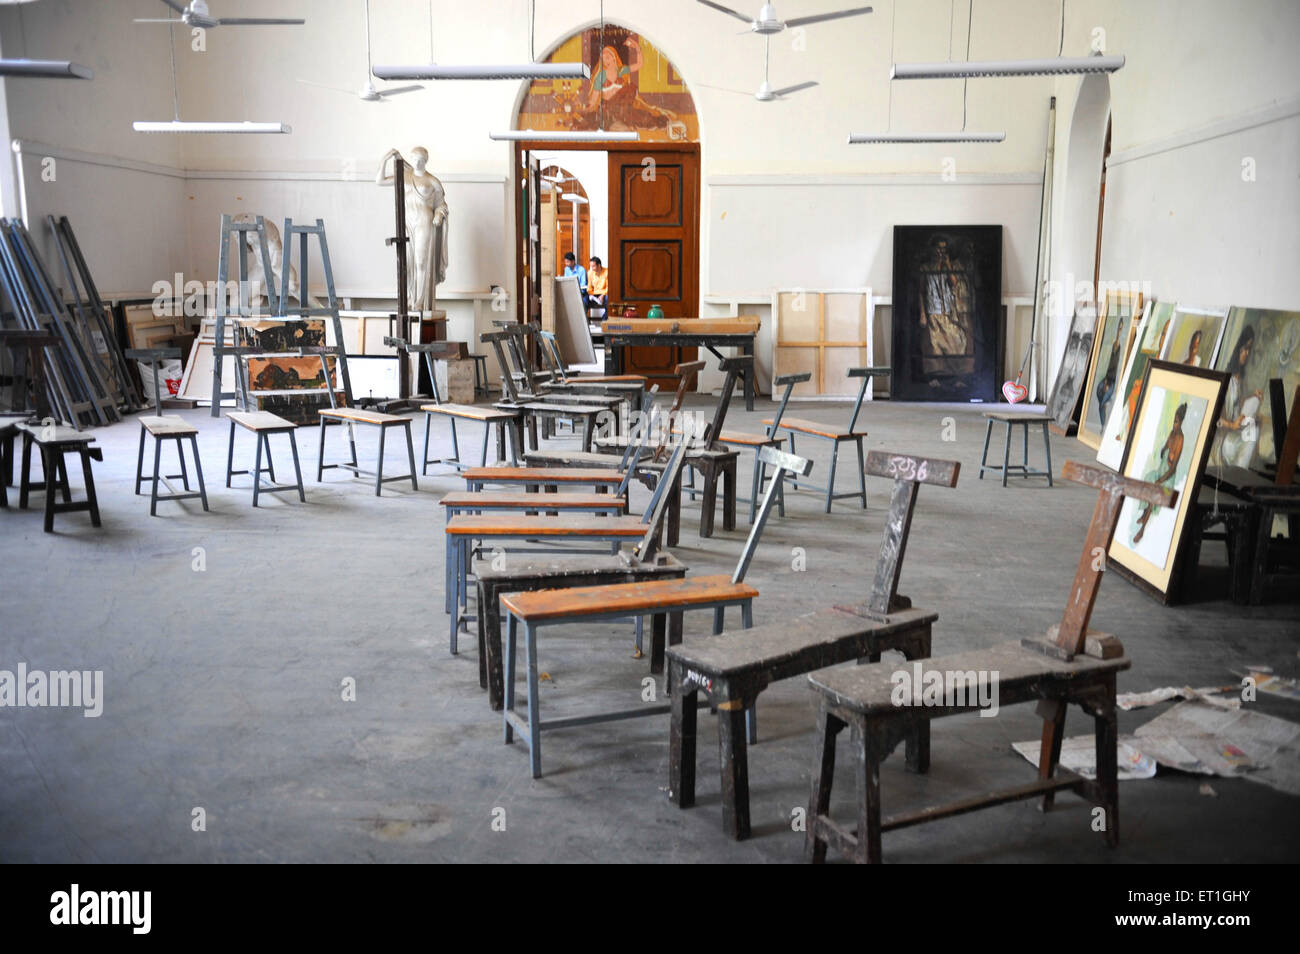 Art Classroom Asia High Resolution Stock Photography And Images Alamy